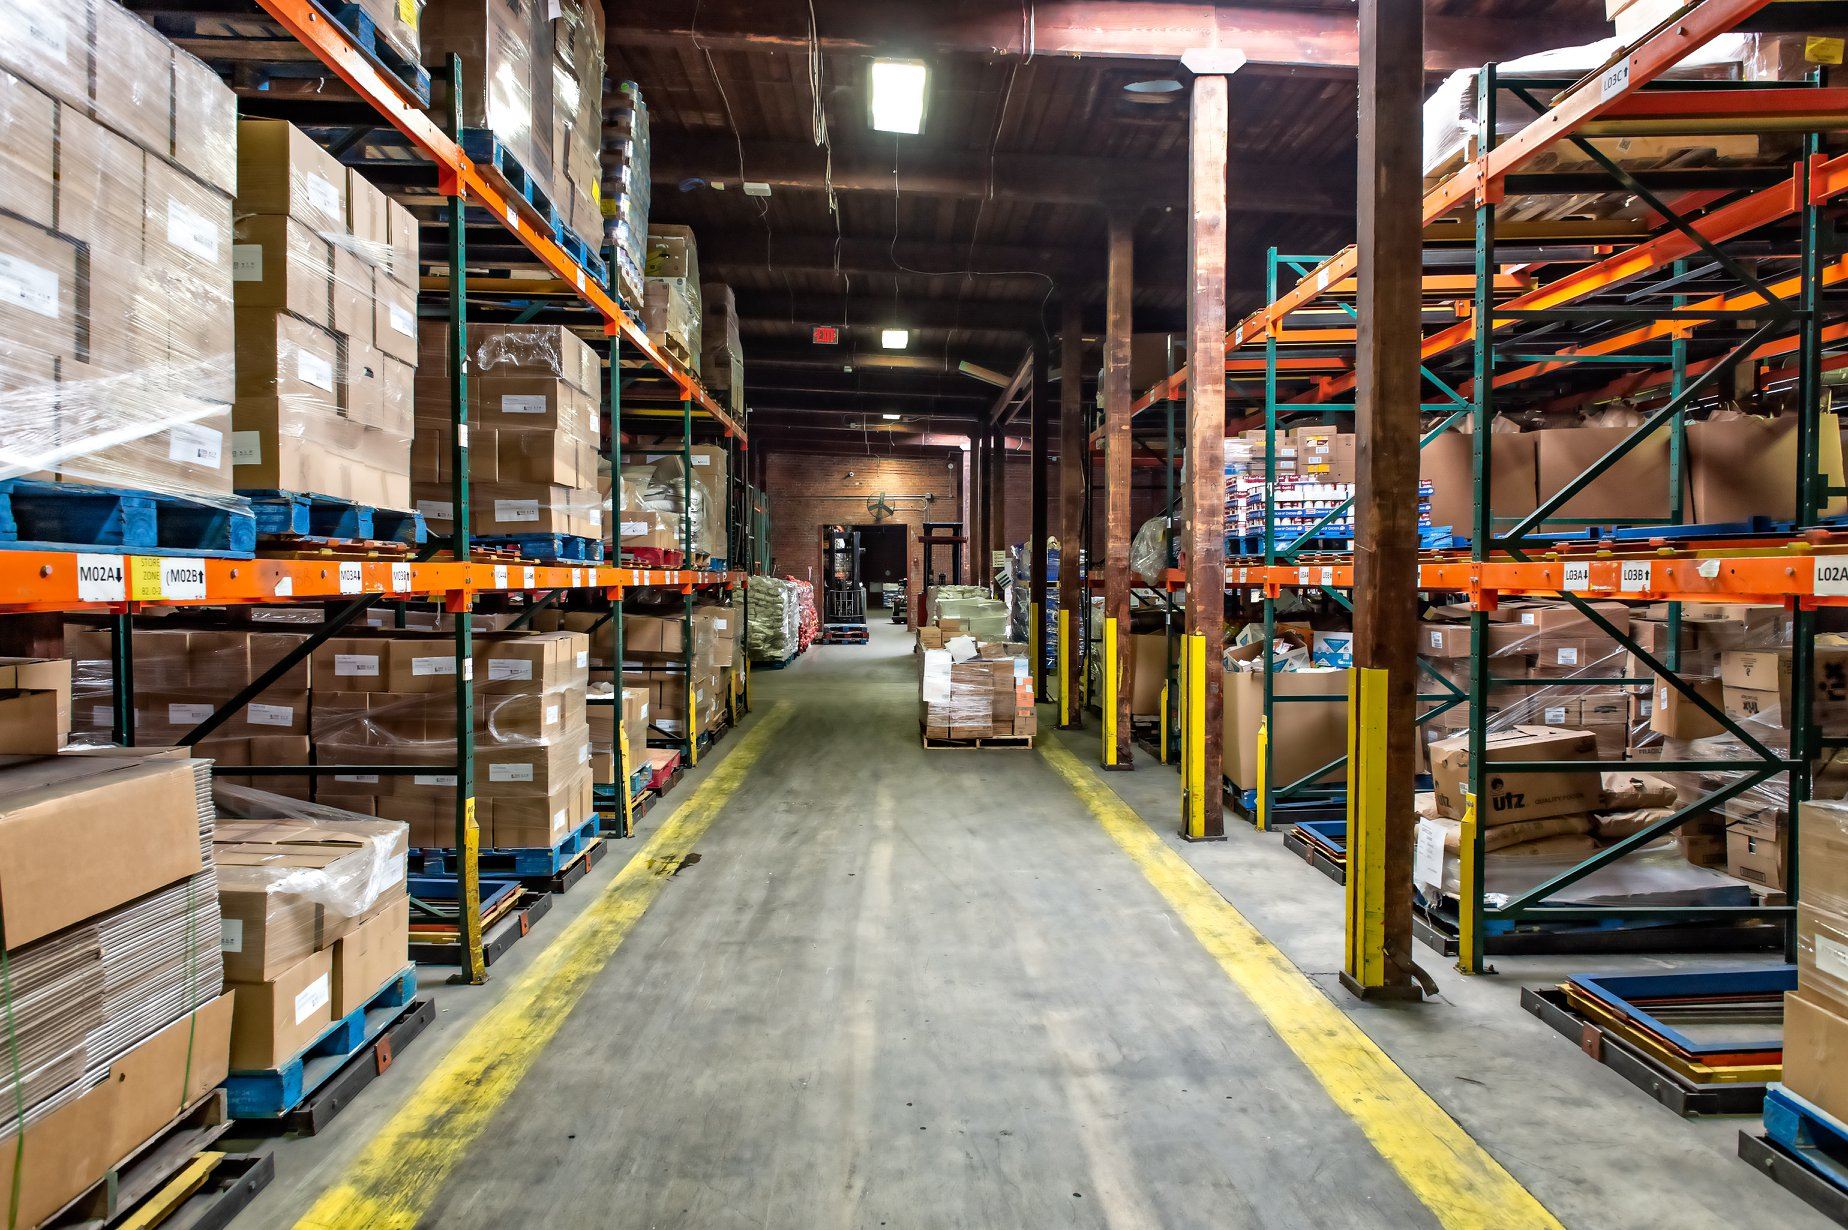 Feed More Food Bank Distribution Center racking